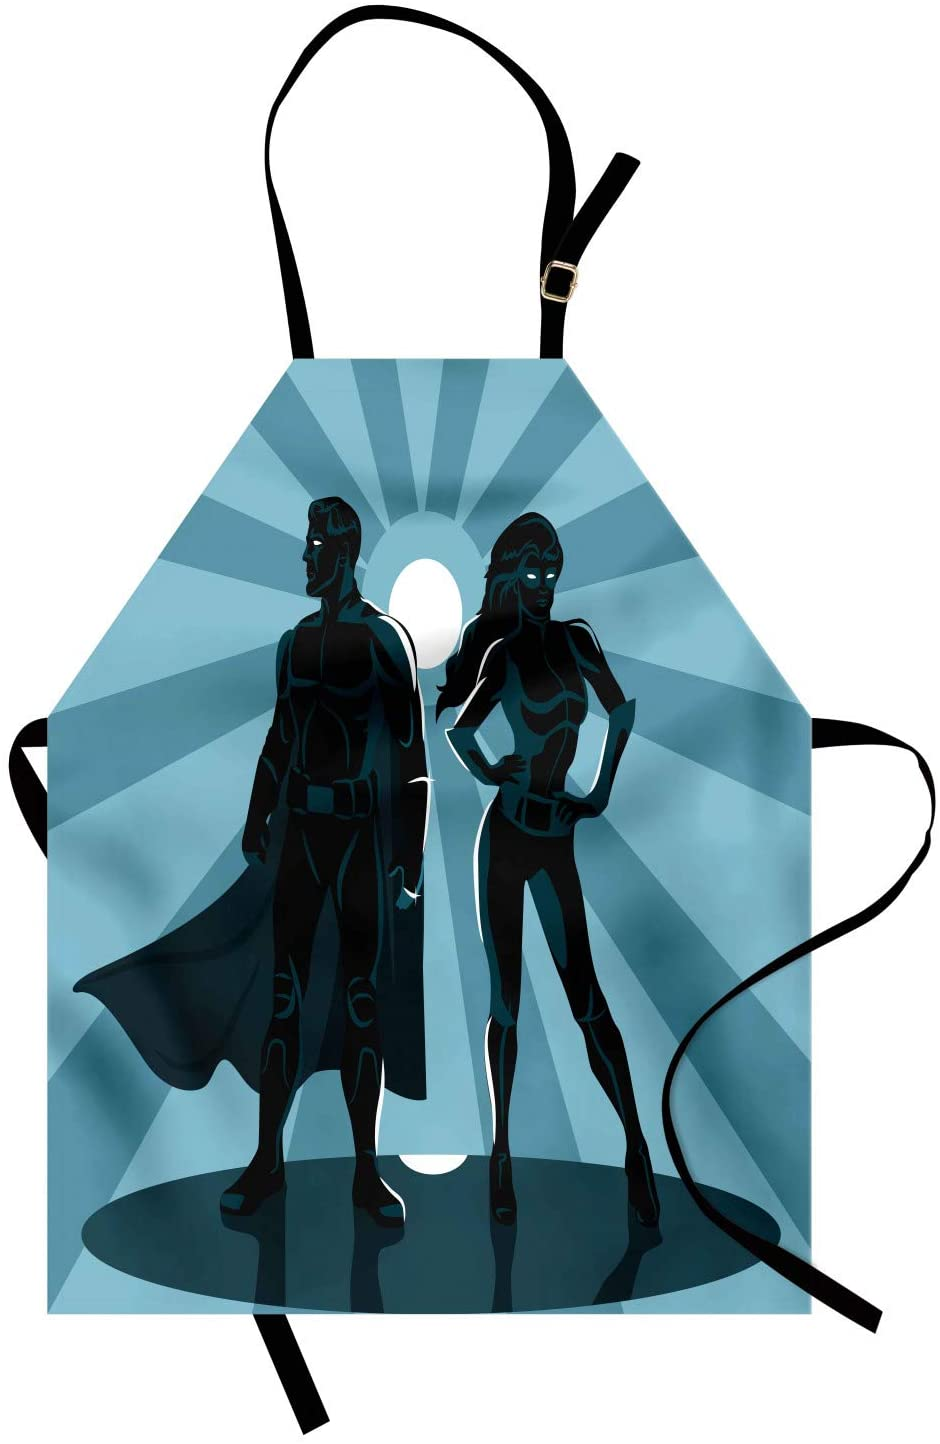 Ambesonne Superhero Apron, Man and Woman Superheroes Costume Capes Night Protector in Moonlight, Unisex Kitchen Bib with Adjustable Neck for Cooking Gardening, Adult Size, Blue Teal